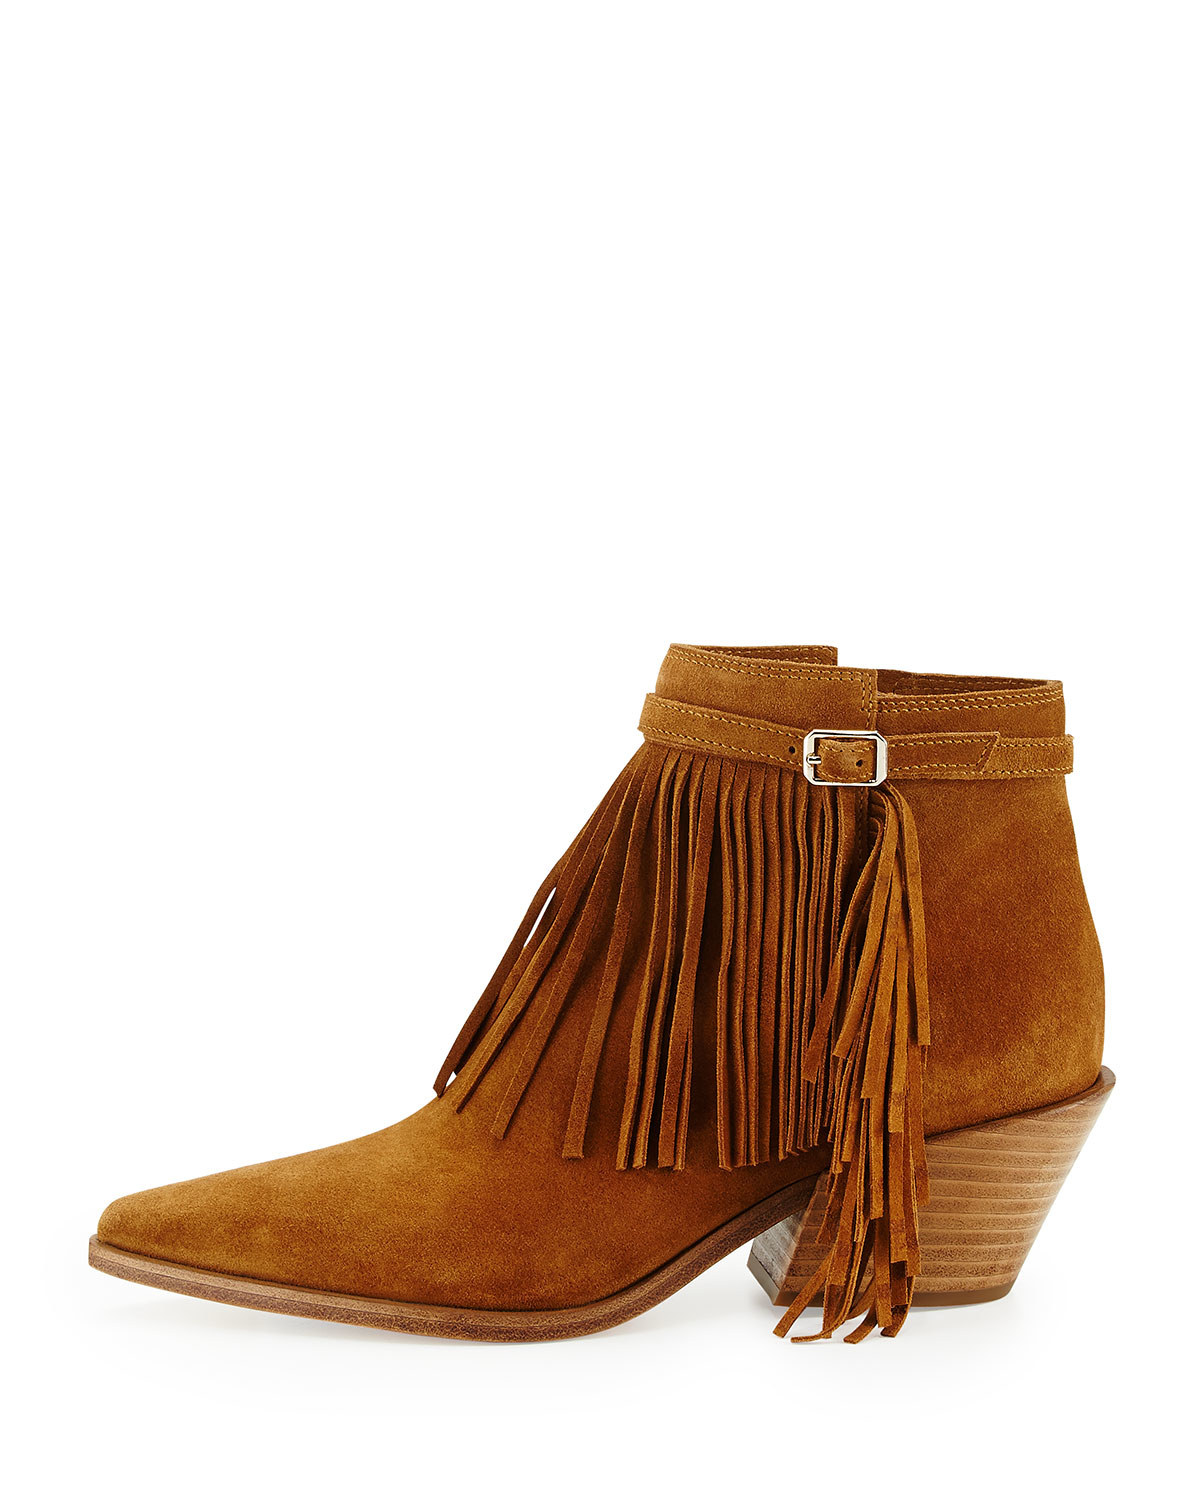 Get the must-have boots of this season! These Christian Louboutin Black Ottocarl Suede Fringe Heel Boots/Booties Size EU (Approx. US ) Regular (M, B) are a top 10 member favorite on Tradesy.